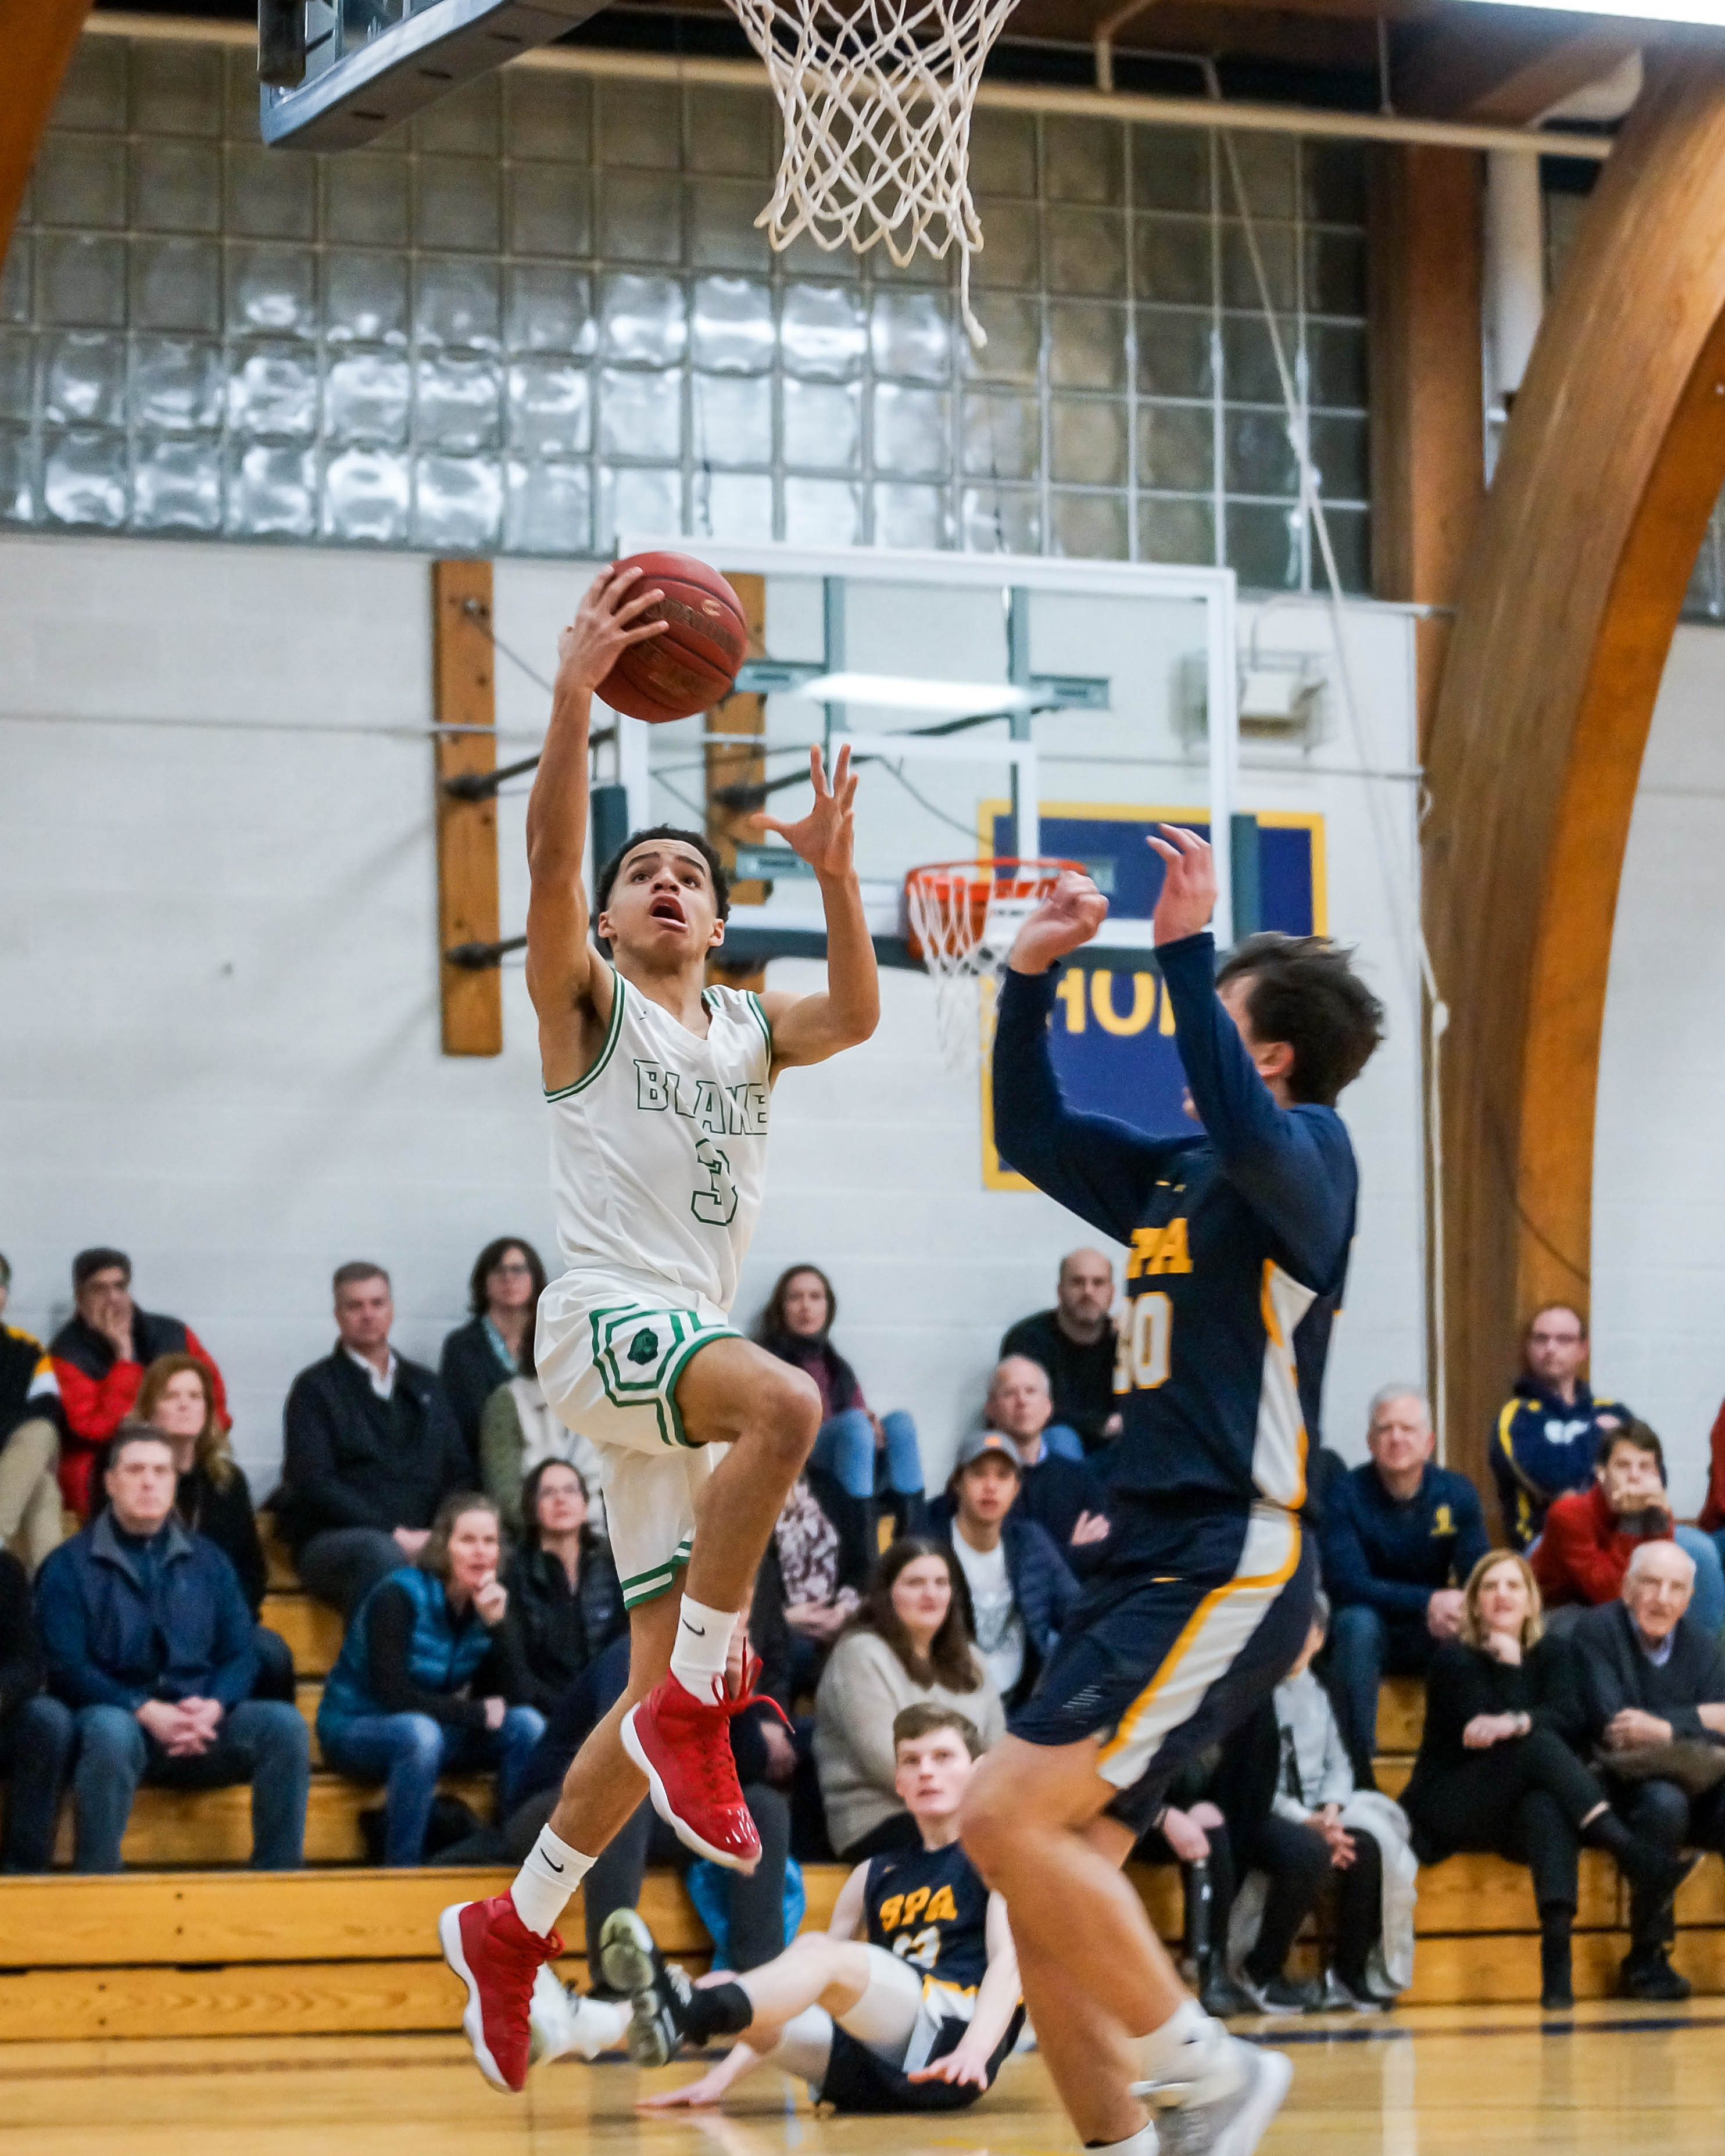 Blake junior Robert Grace IV (3) with a look at the basket over St Paul Academy's Ethan Richman on Feb 7. Photo by Korey McDermott, SportsEngine